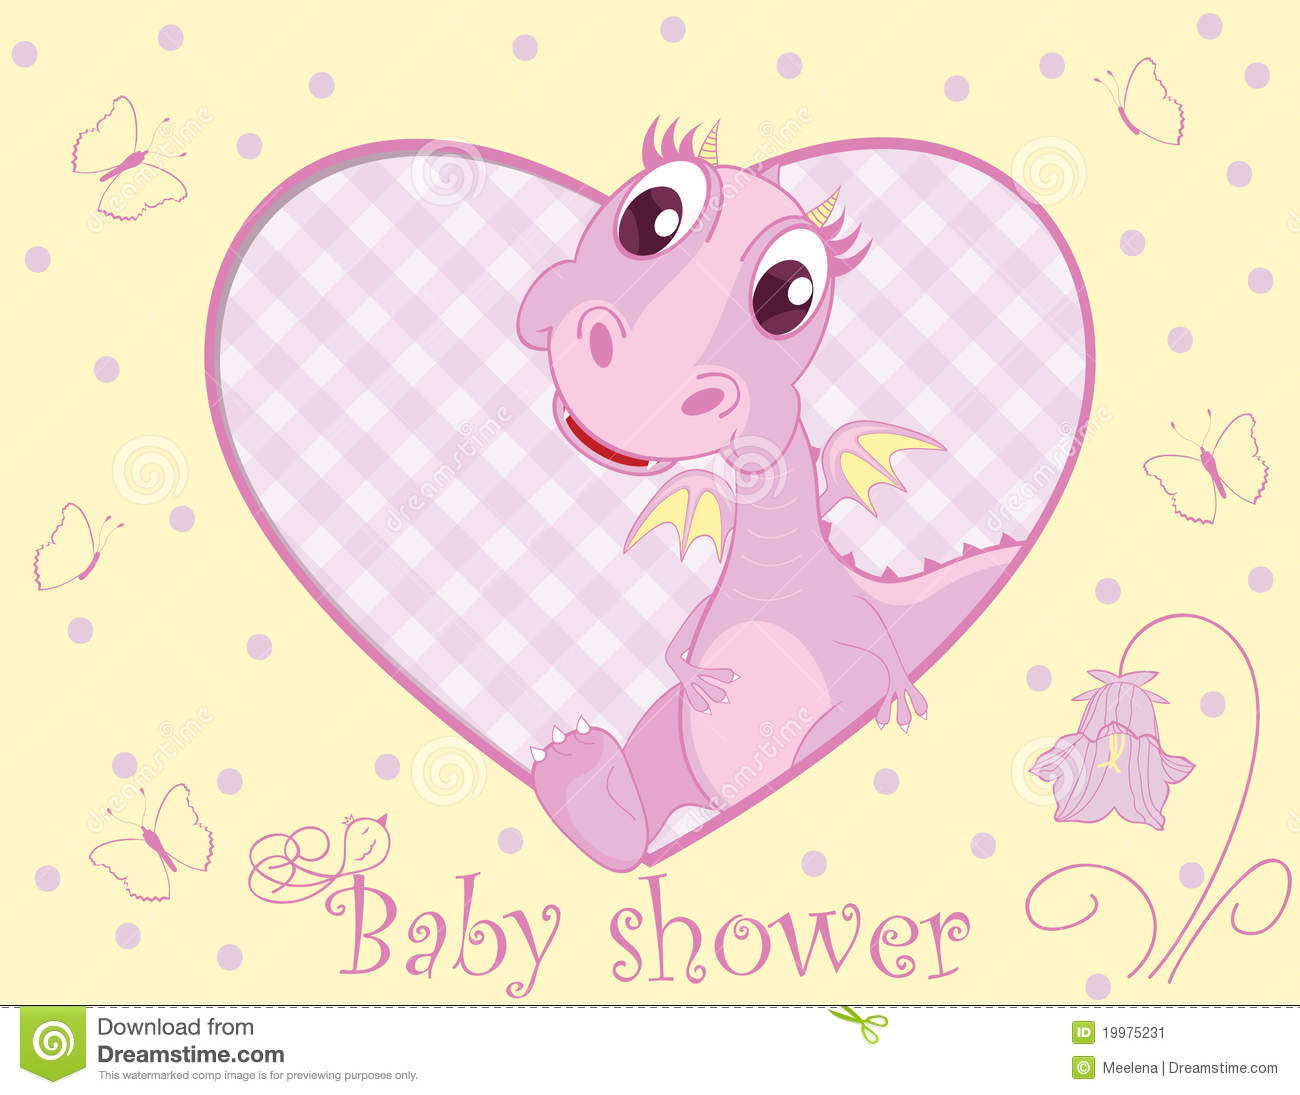 Sweet Baby Girl Wallpaper Free Download Dragon For Baby Girl Stock Vector Image Of Illustration